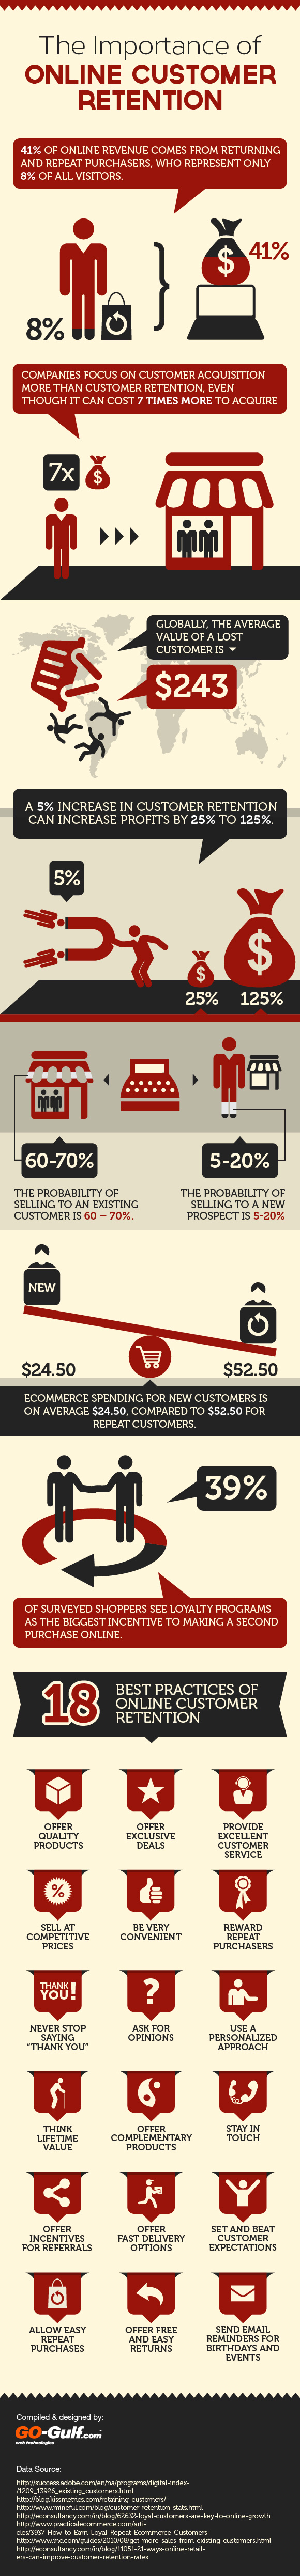 the-importance-of-online-customer-retention-infographic_51e8e7b4b0358